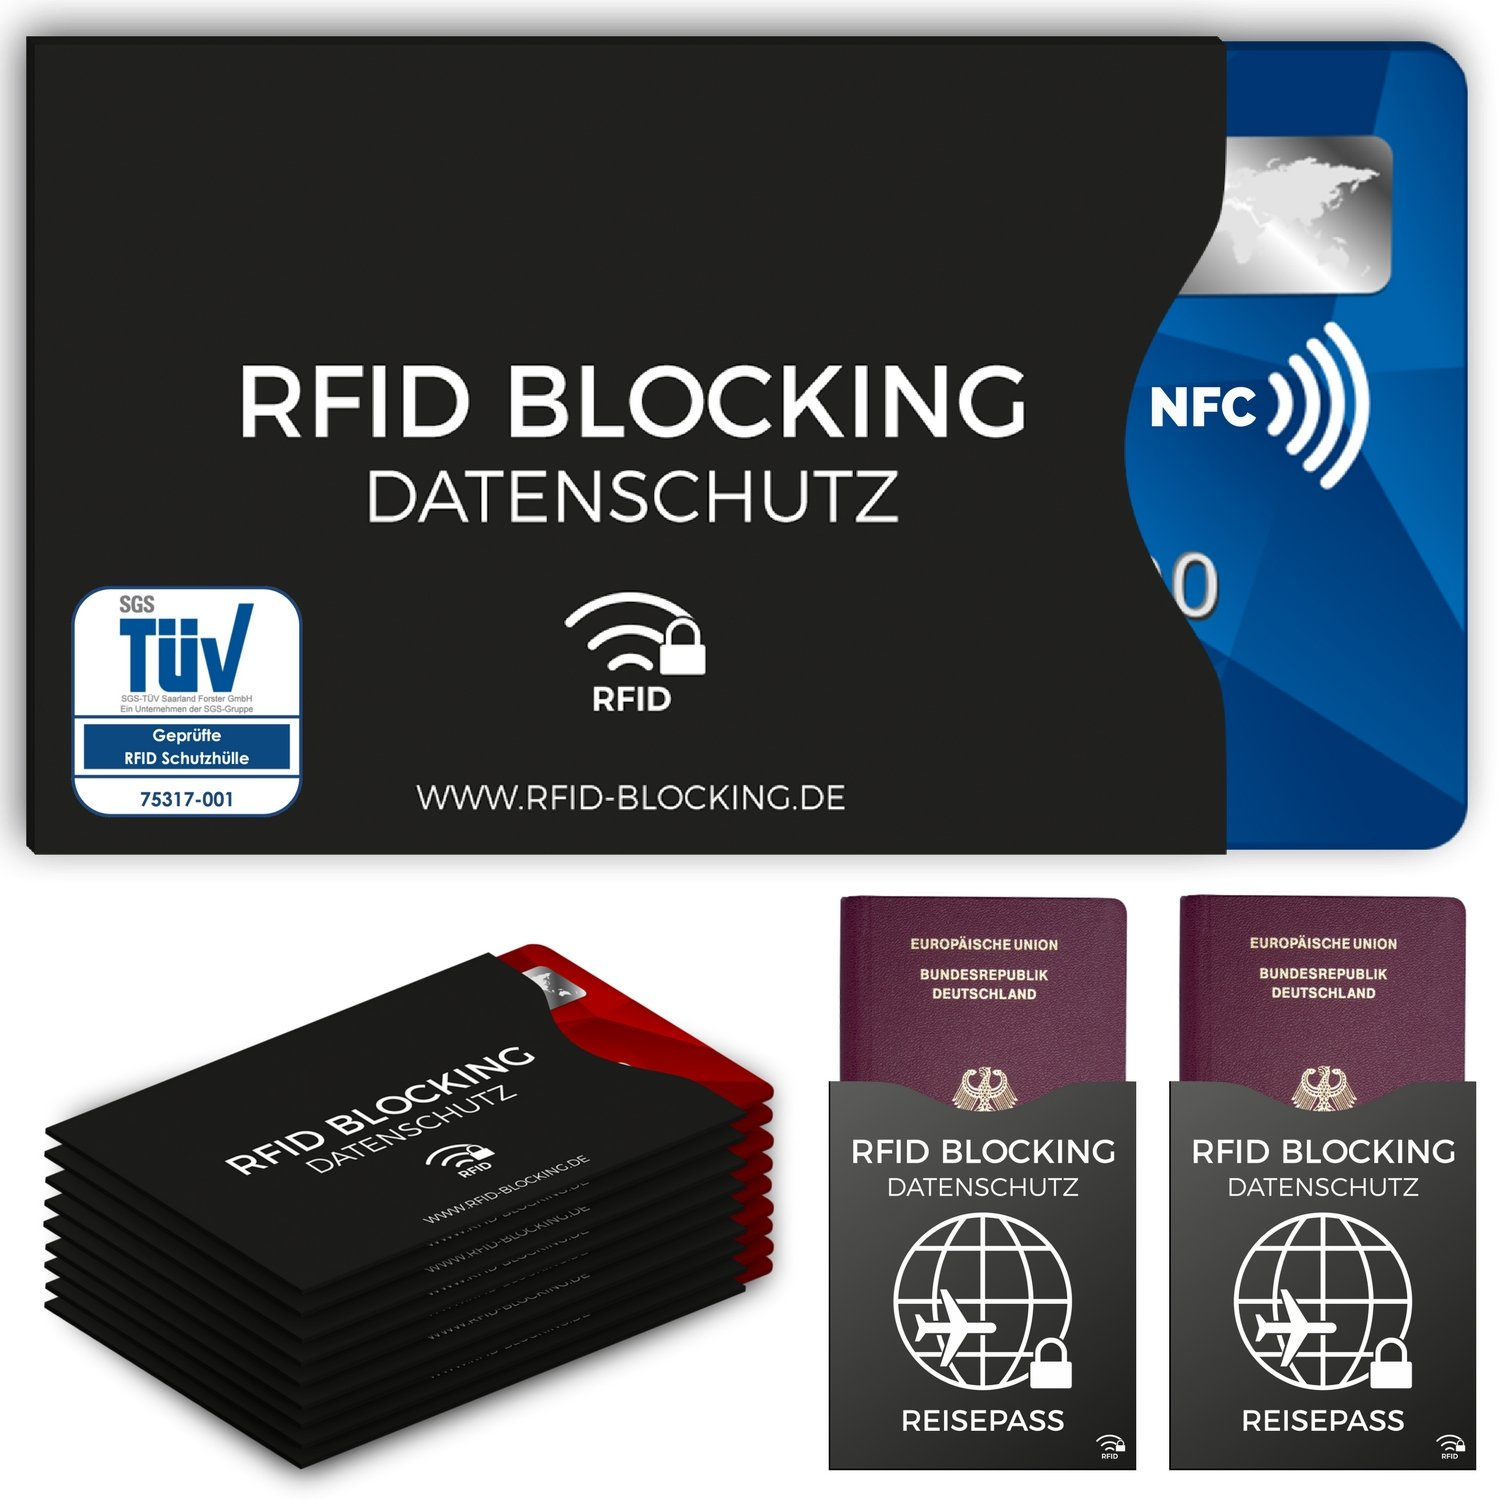 RFID Blocking NFC protection sleeve (12 pieces) for credit card, identity card, bank card, EU passport - 100% Protection for credit-cards against data skimming KB-RB-300C